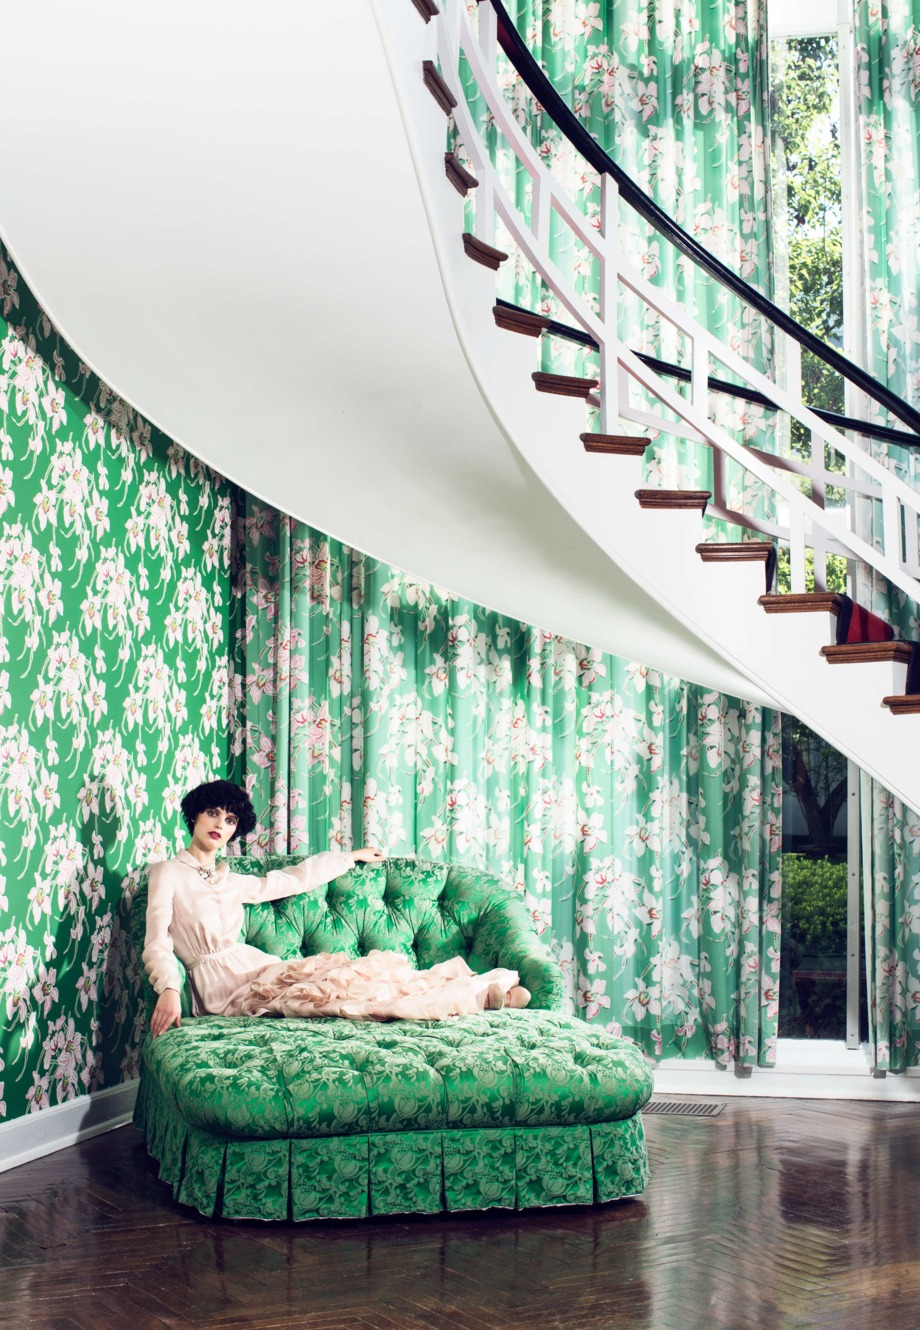 ©JUCO Photo (Julia Galdo and Cody Cloud) - The Greenbrier. Fotografía | Photography